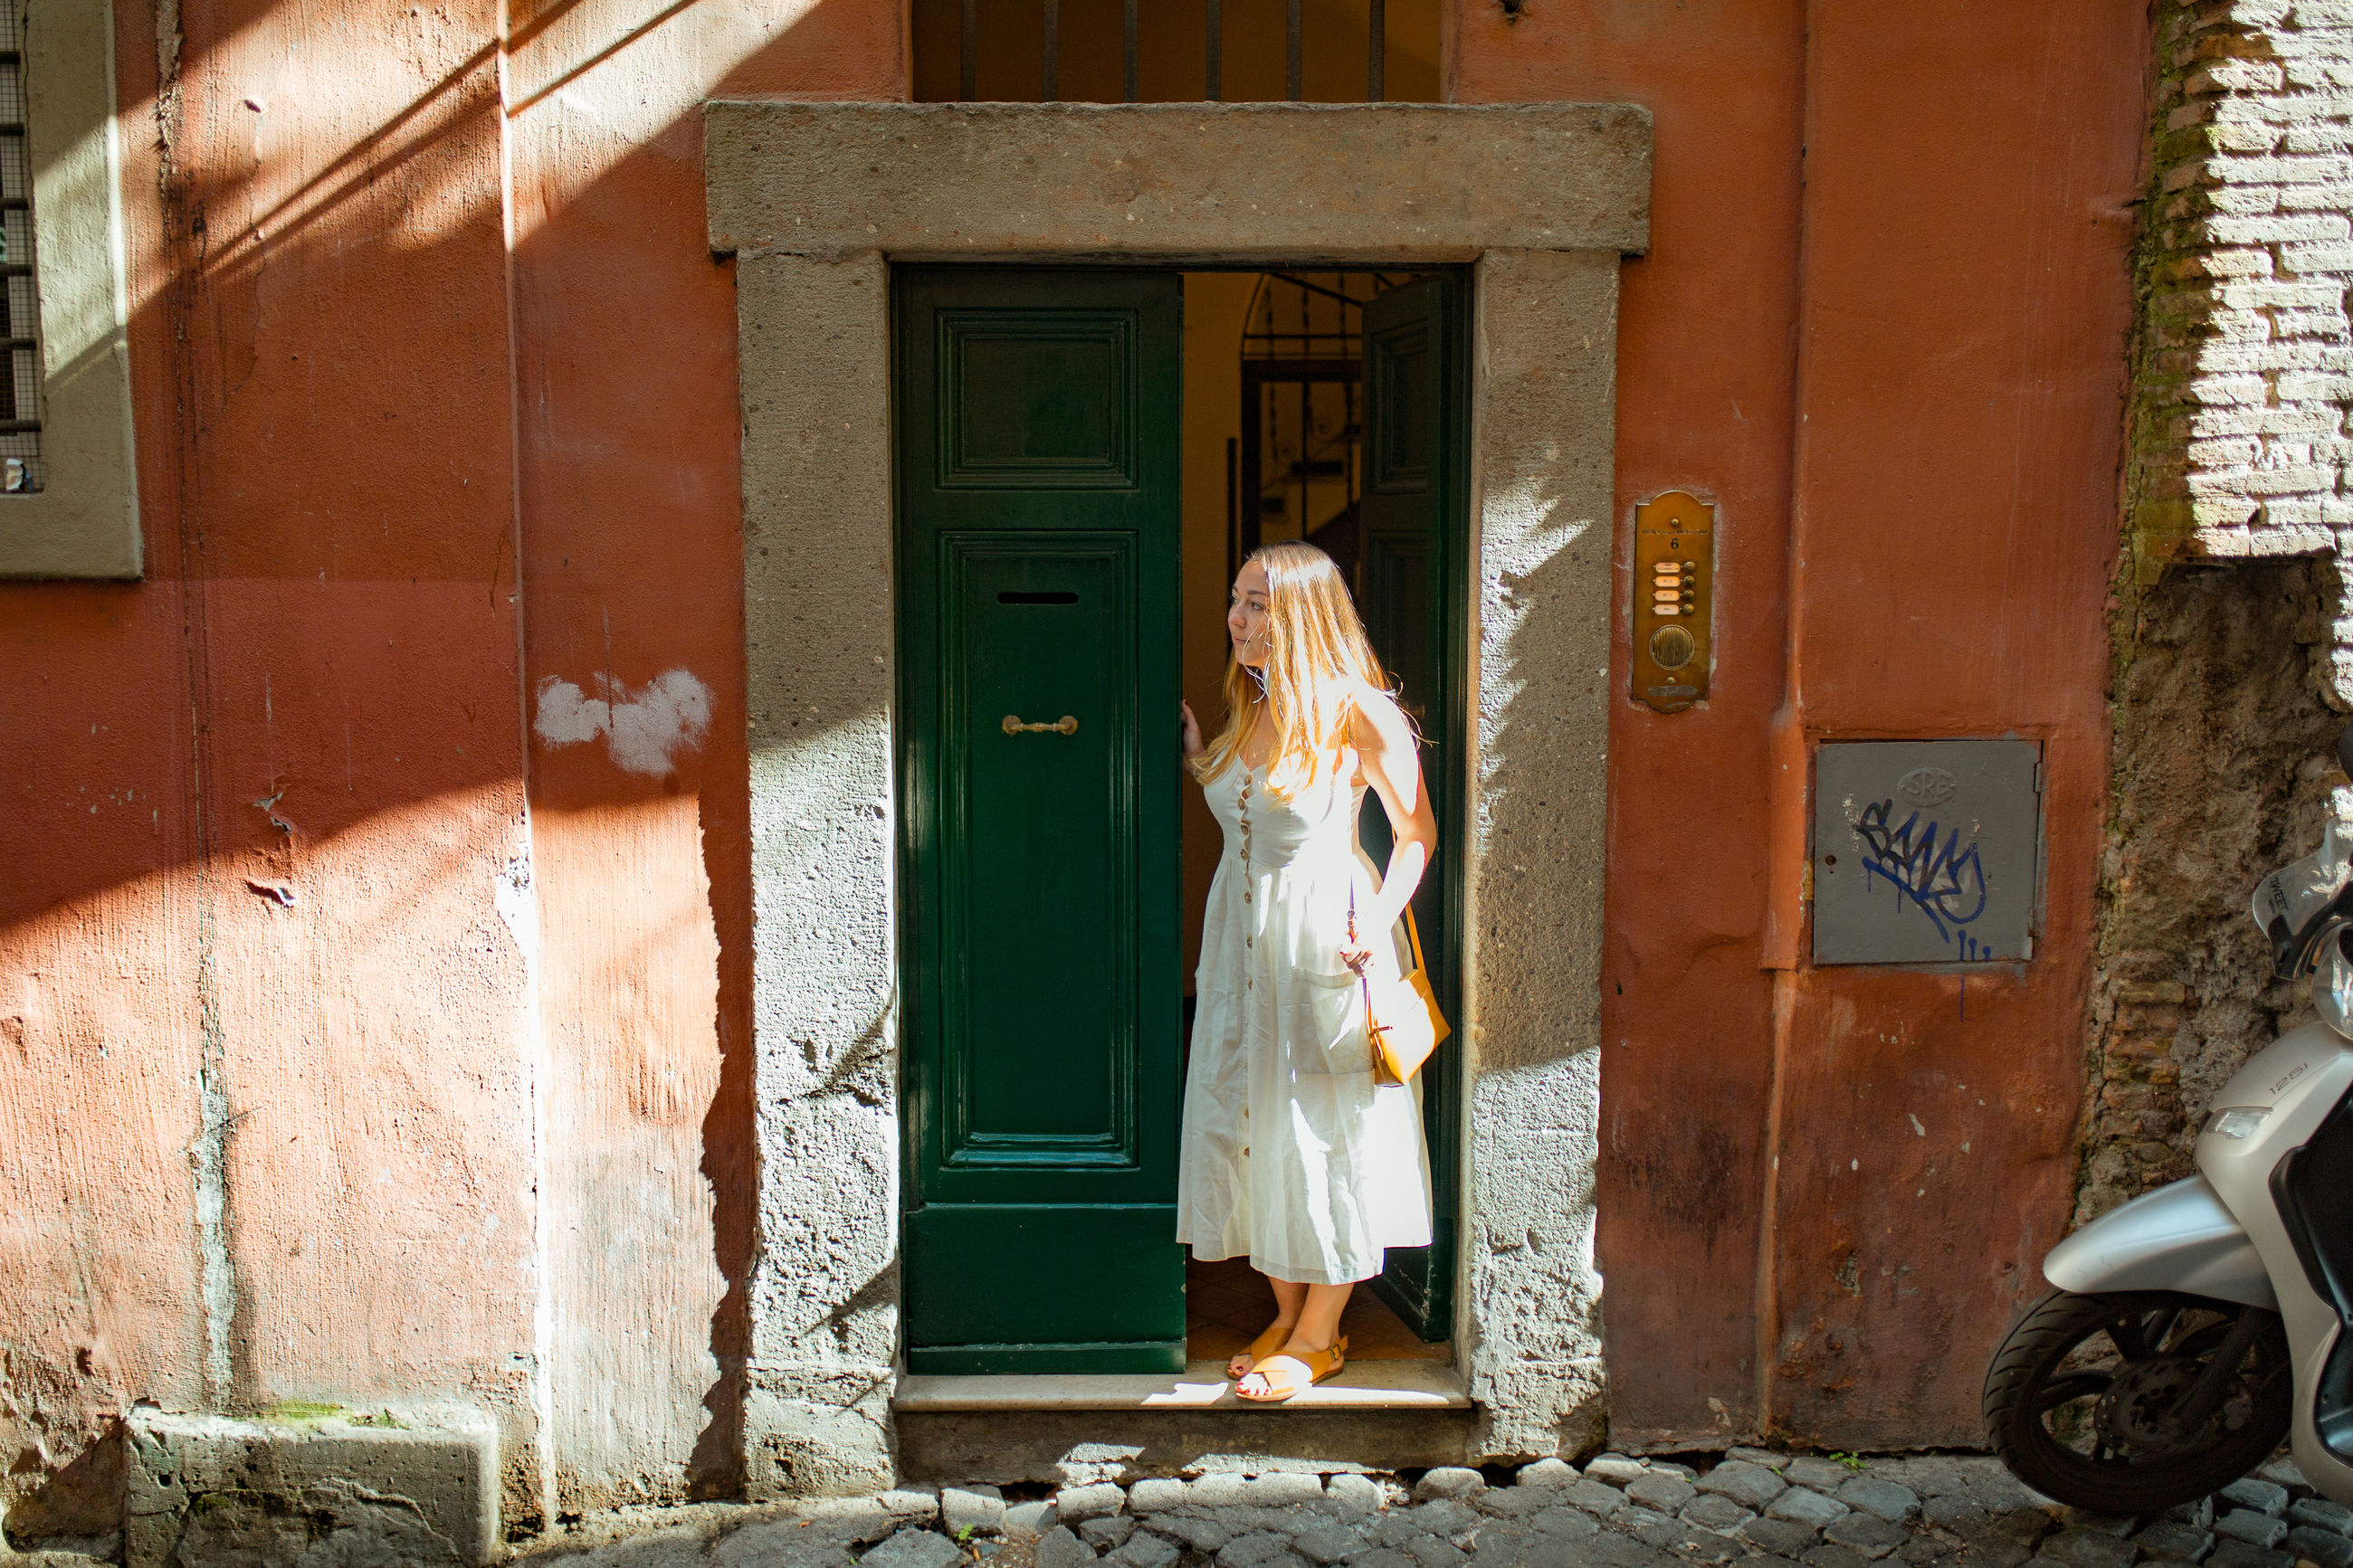 architecture, building exterior, built structure, building, day, entrance, real people, door, full length, women, one person, adult, clothing, house, religion, outdoors, wall - building feature, sunlight, traditional clothing, obscured face